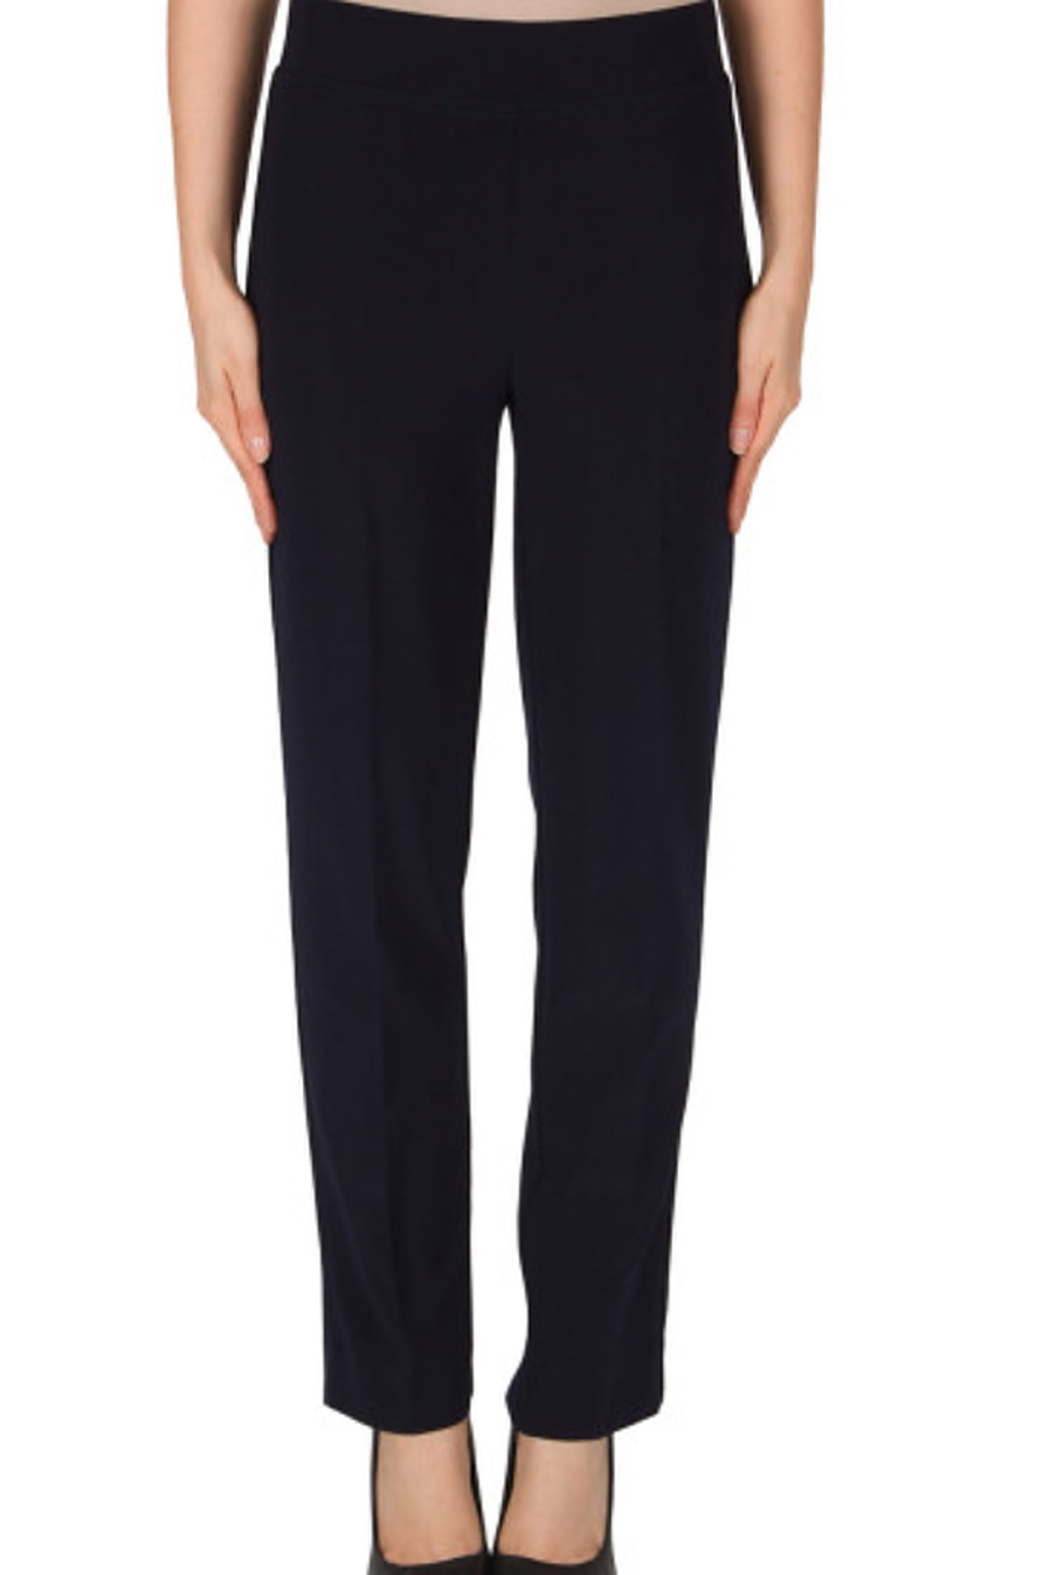 Joseph Ribkoff  The Essential Pant, Black, Navy, & White - Front Cropped Image